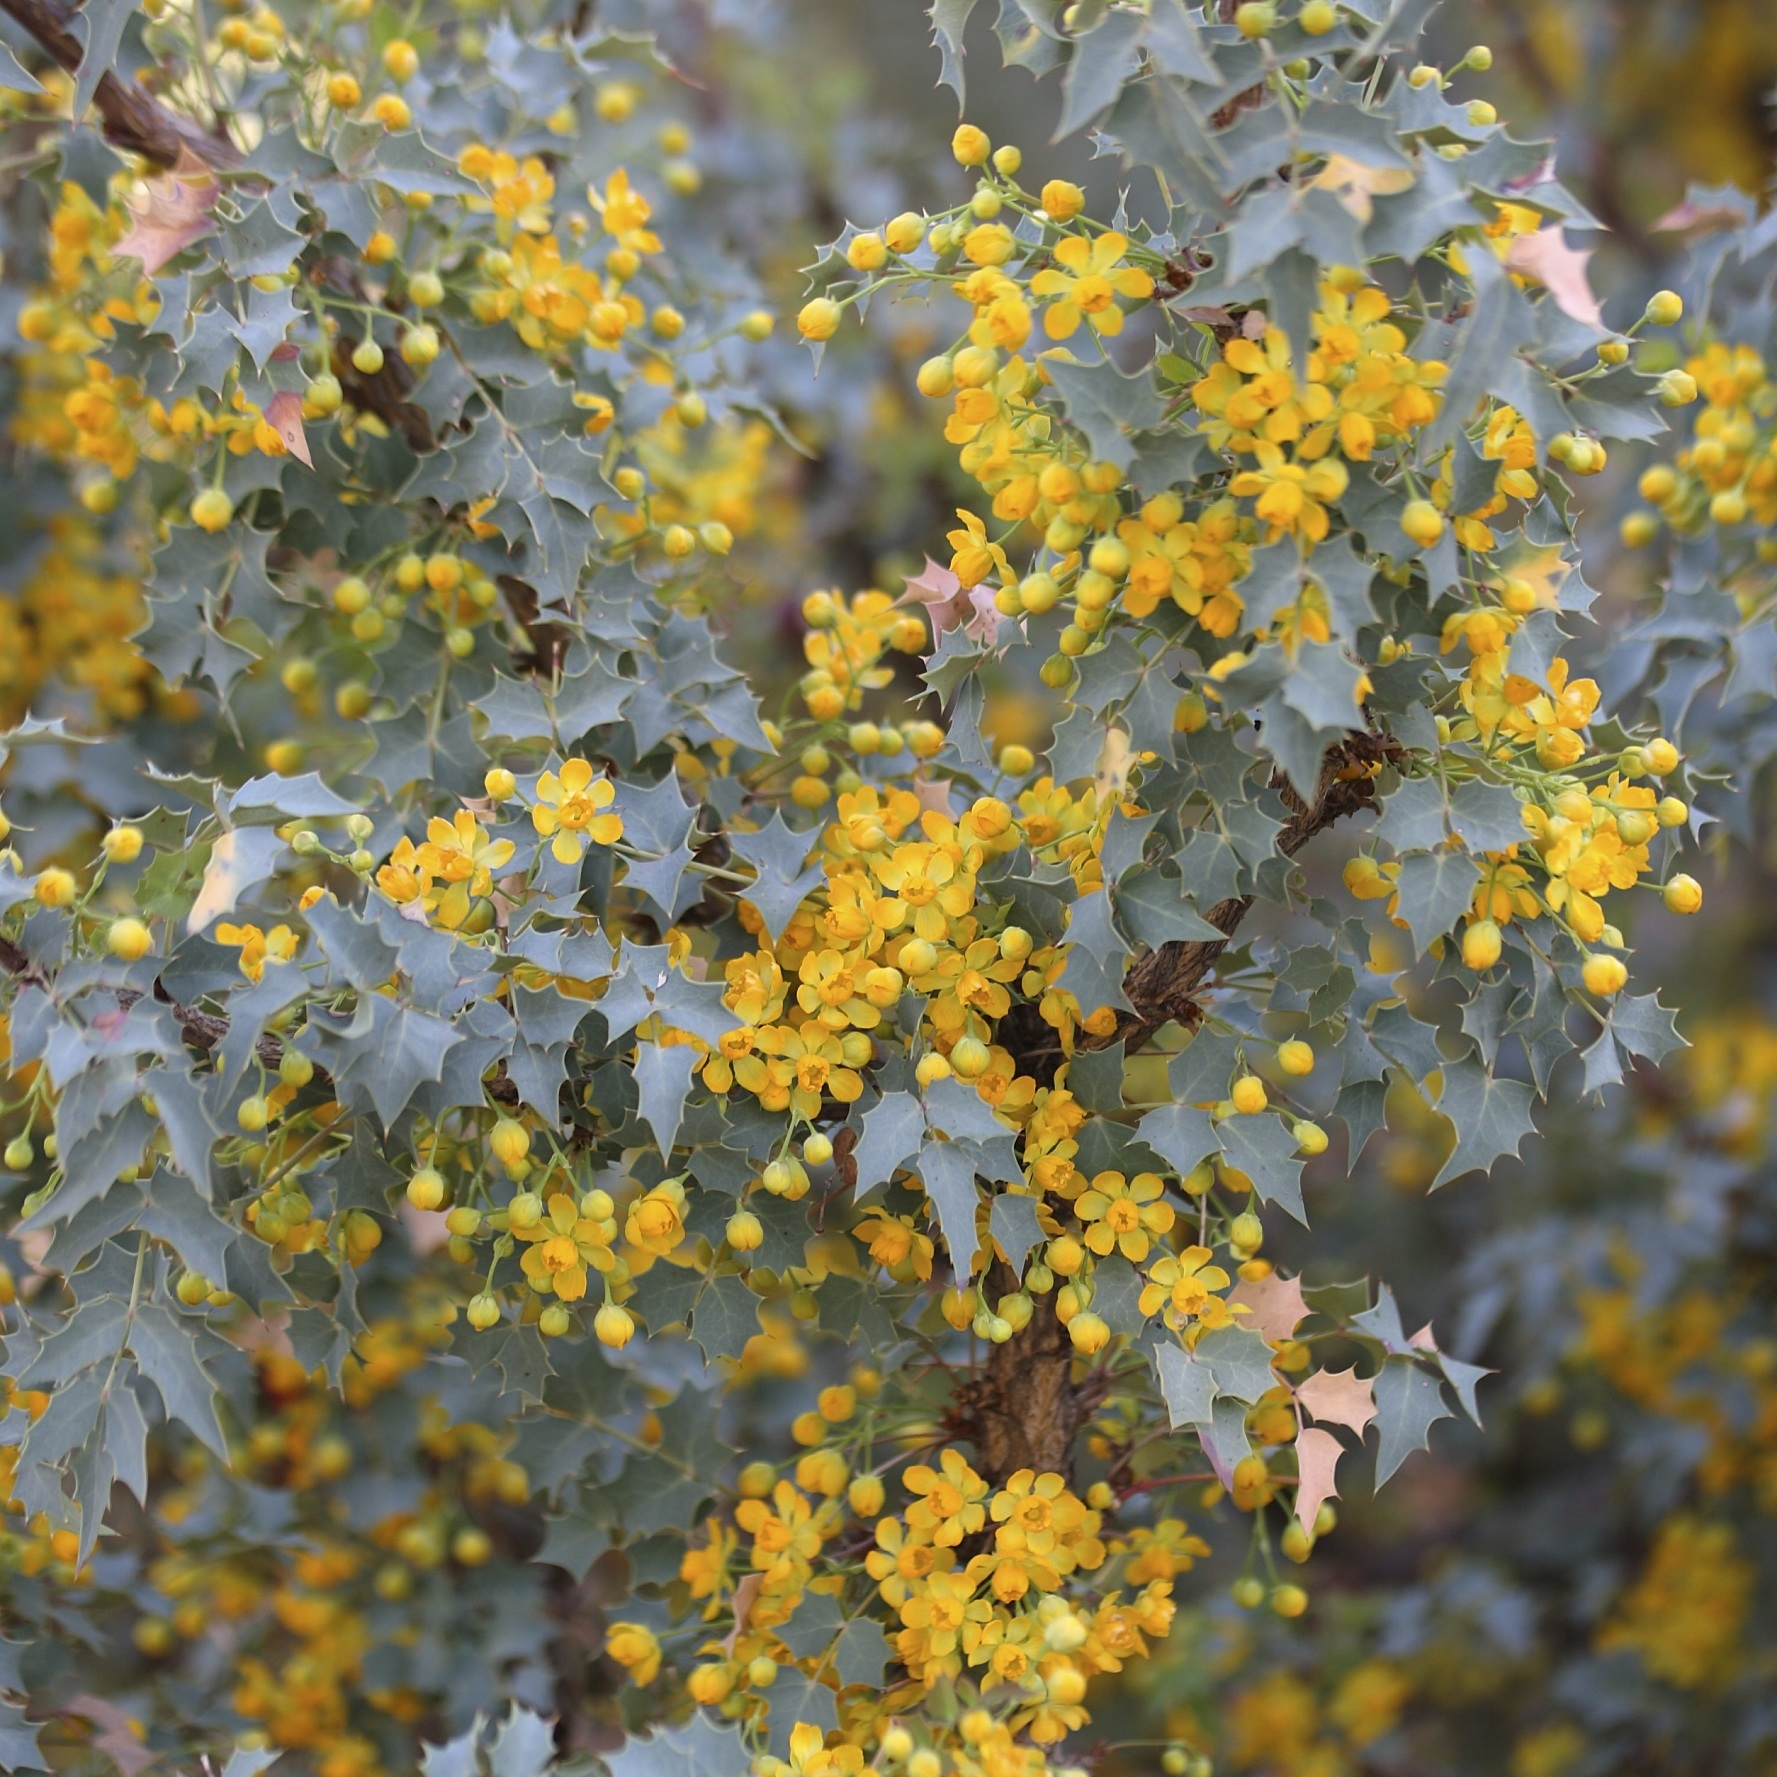 Mahonia-yellow-flowers-0316.jpg (skyword:242022)